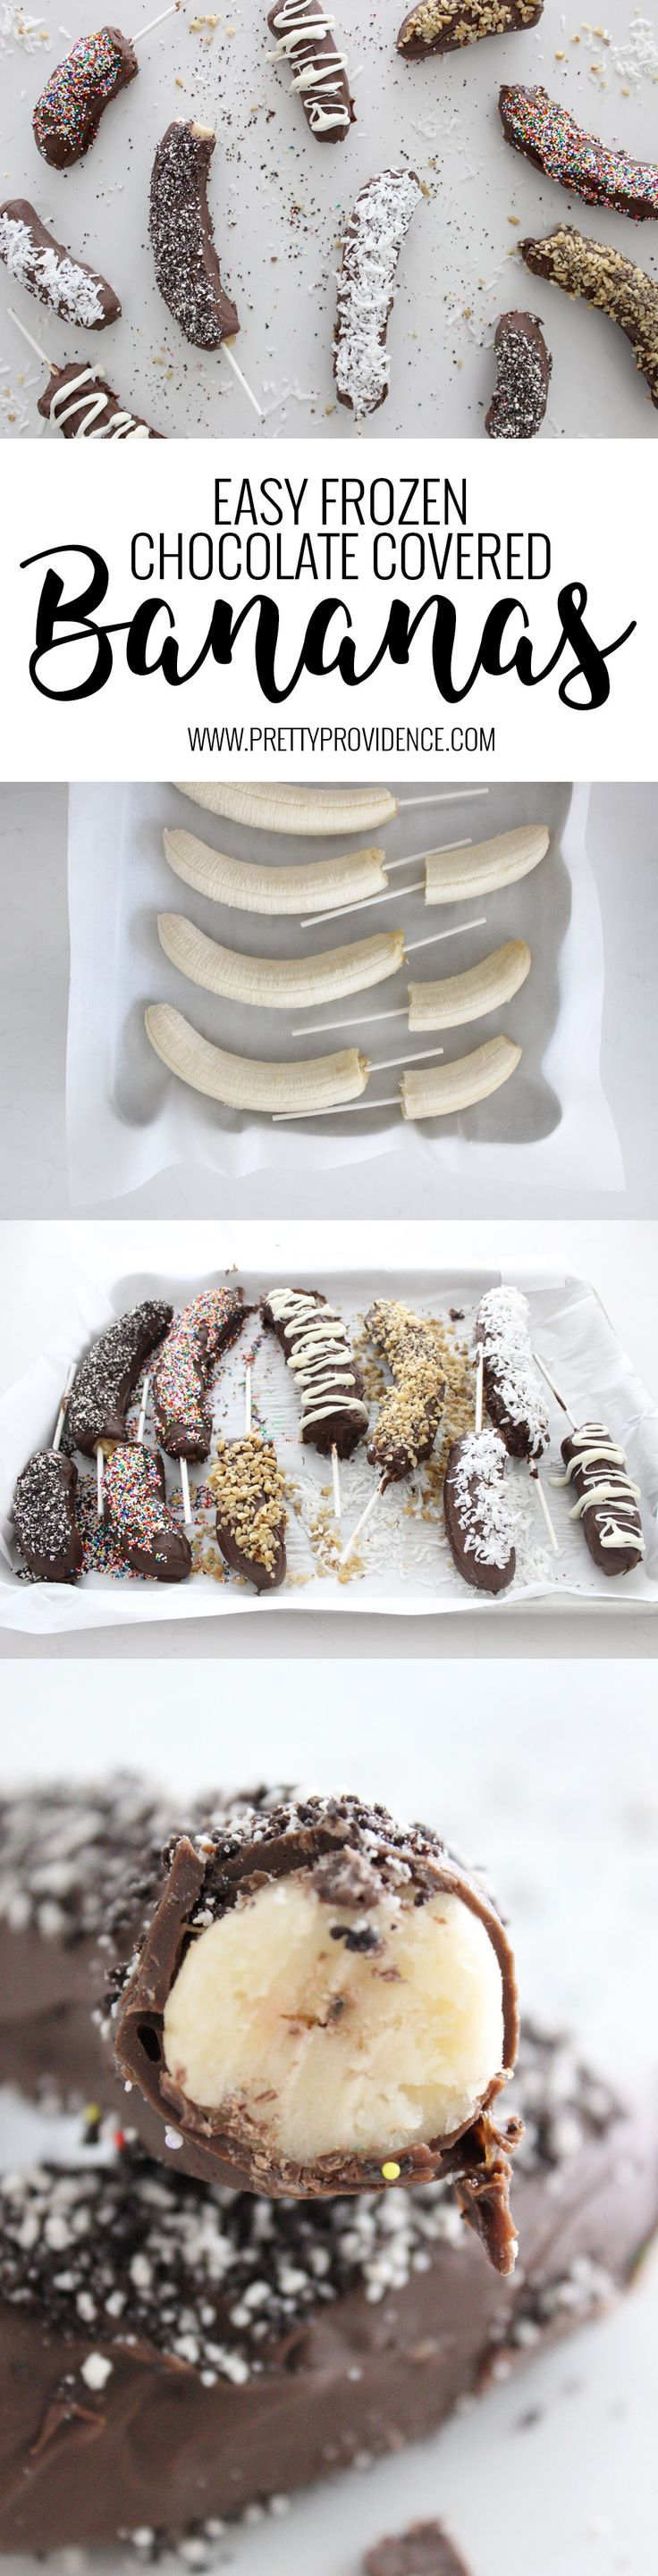 Not only are these frozen chocolate covered bananas easy to make, they are freaking delicious! Such a fun summer treat, and lots better for you than a regular ice cream bar! MichaelsMakers Pretty Providence